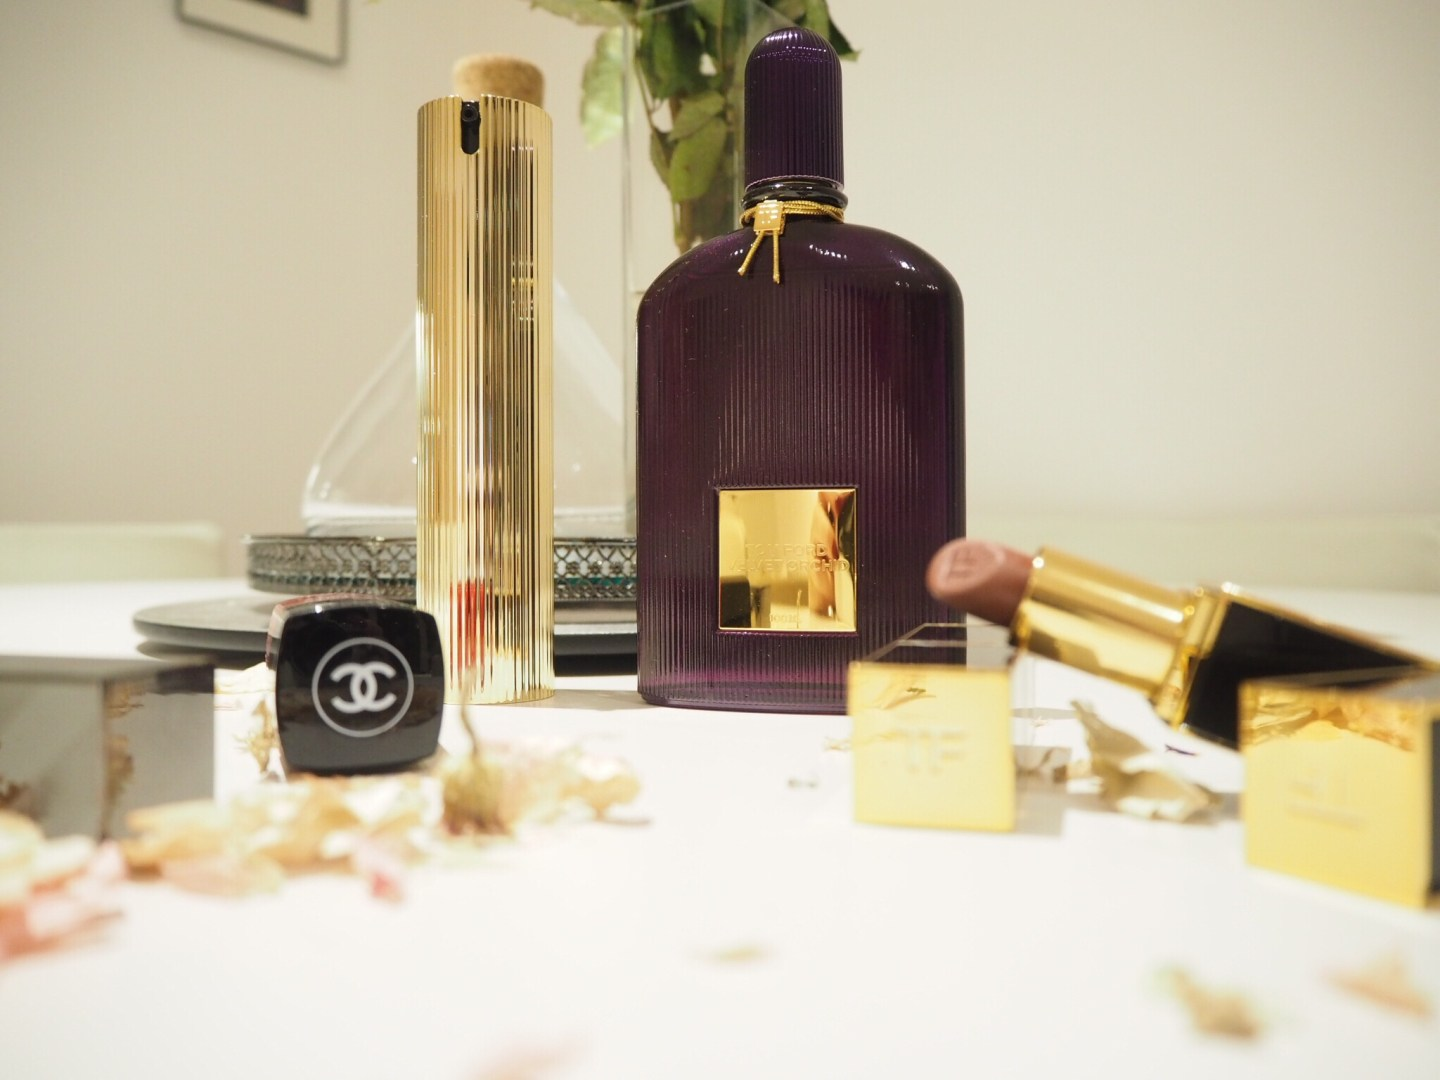 Can't Resist: Tom Ford, Velvet Orchid